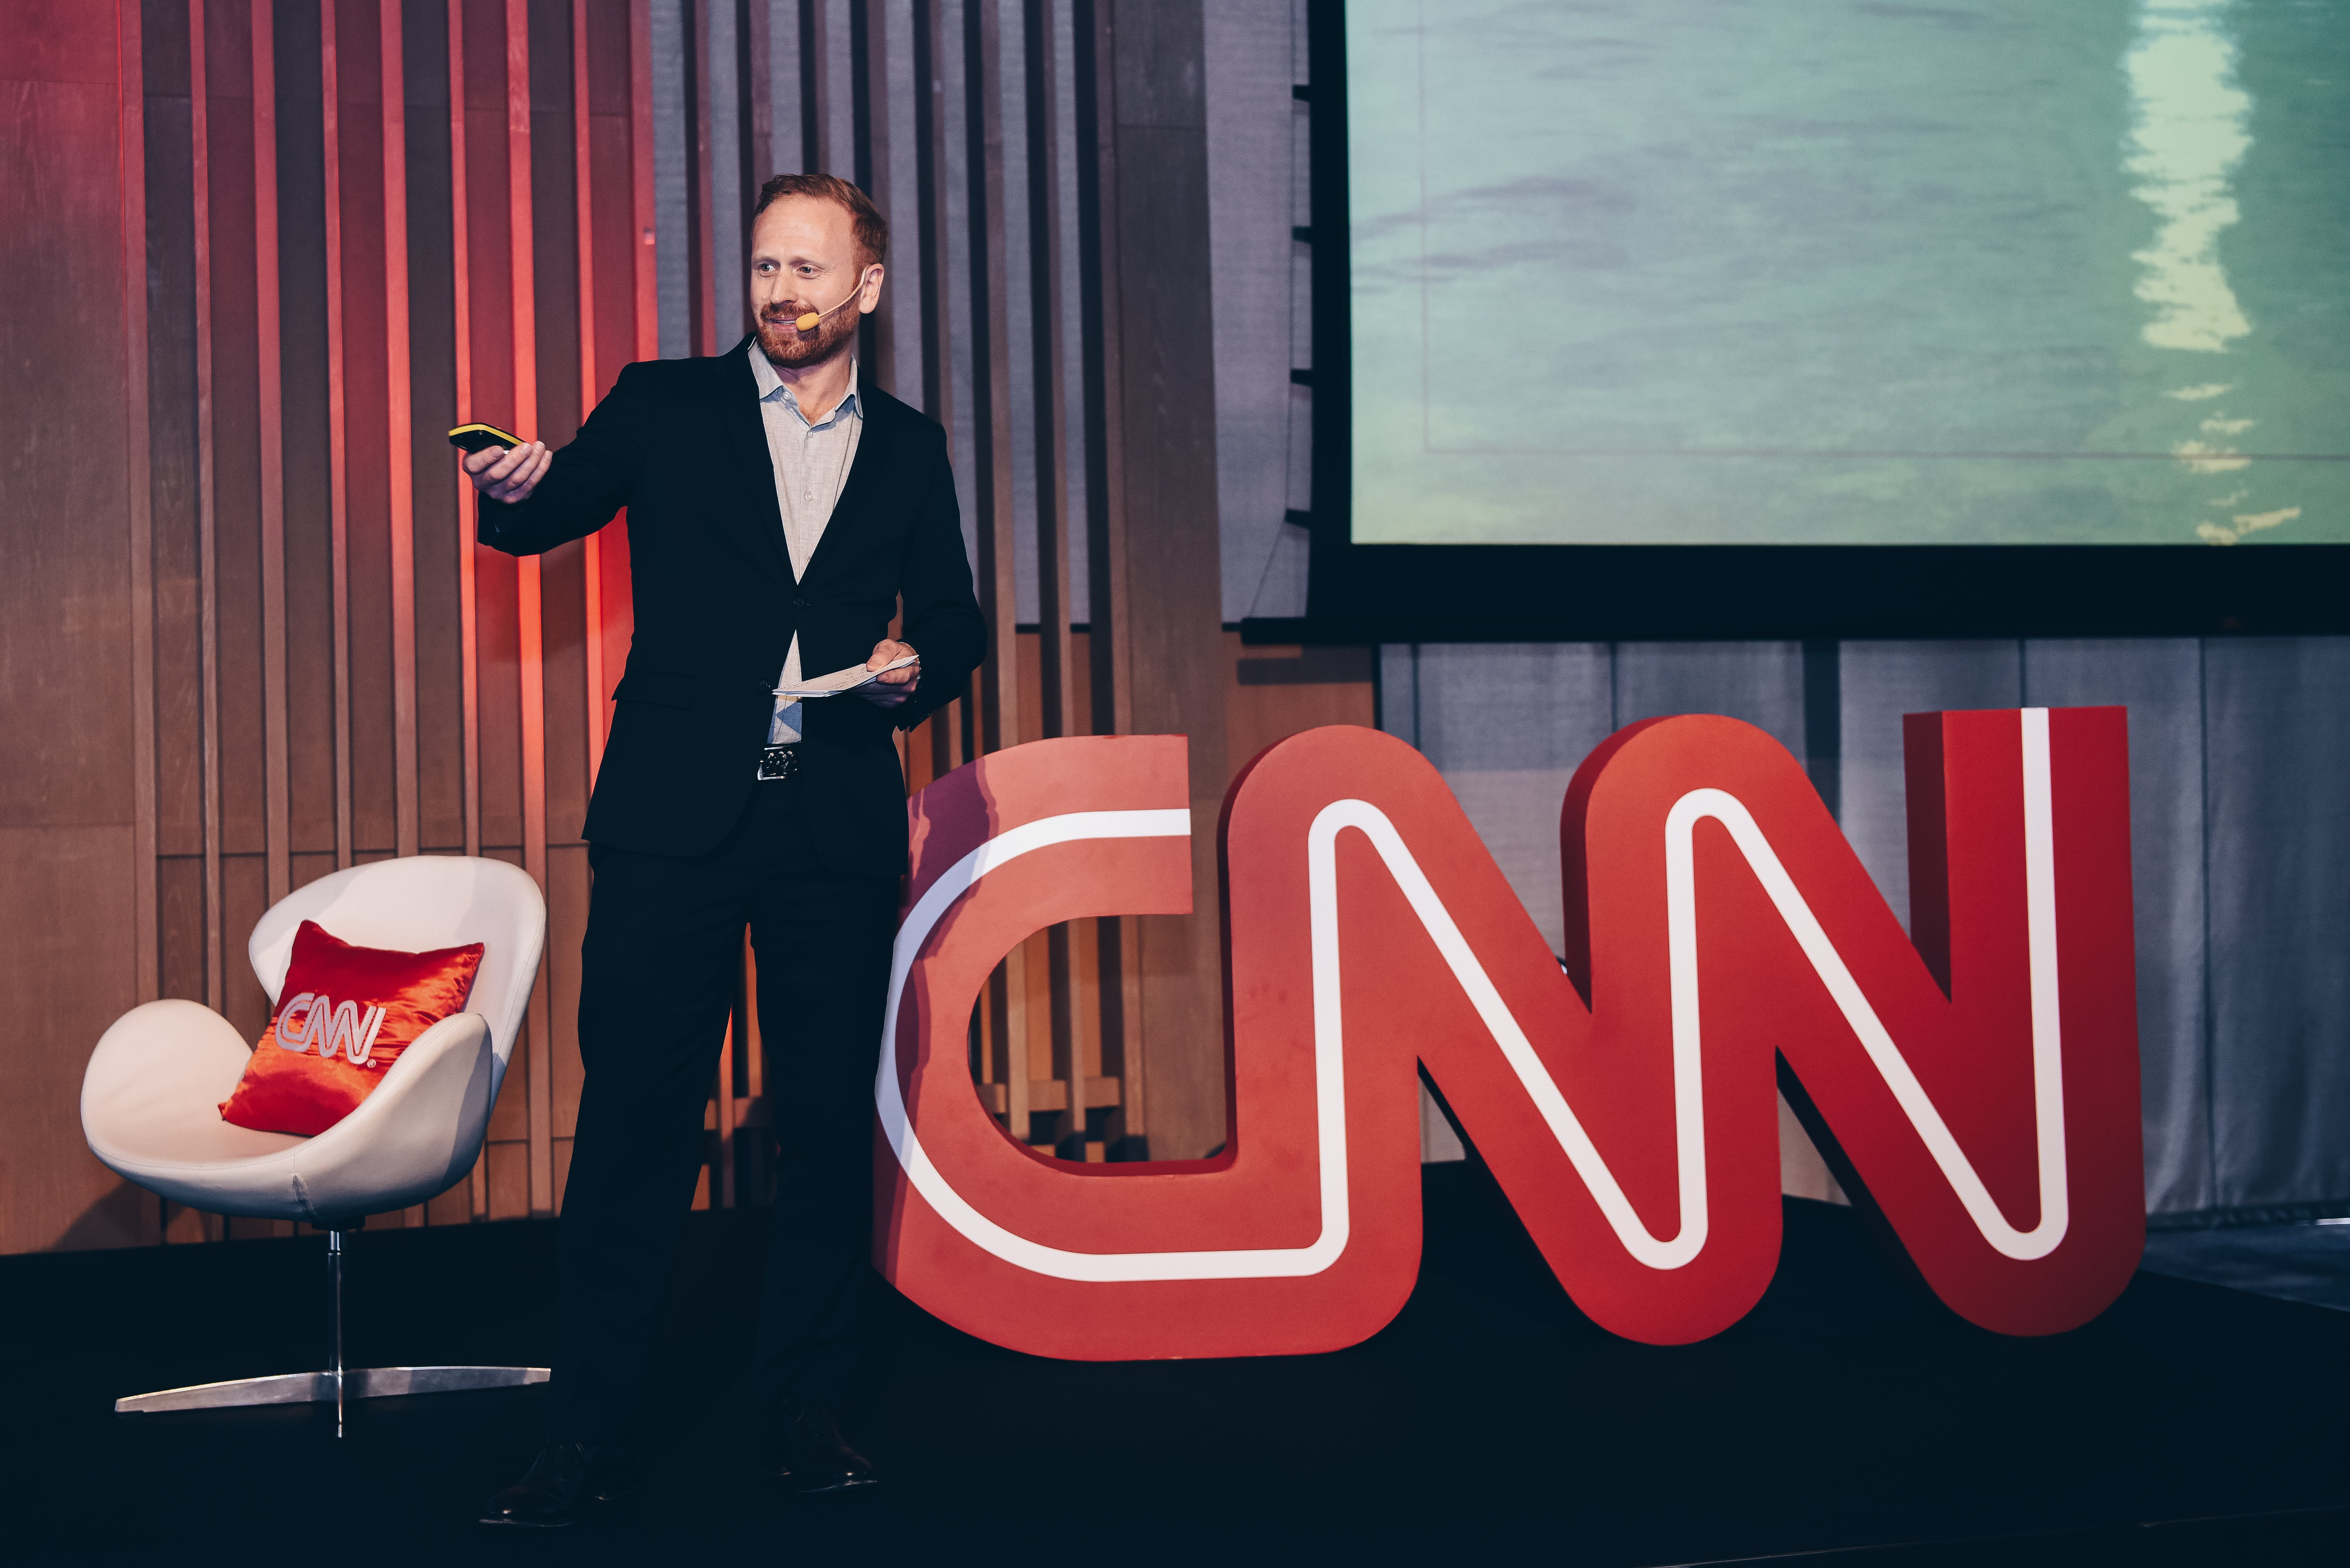 CNN Experience - live event experience 2